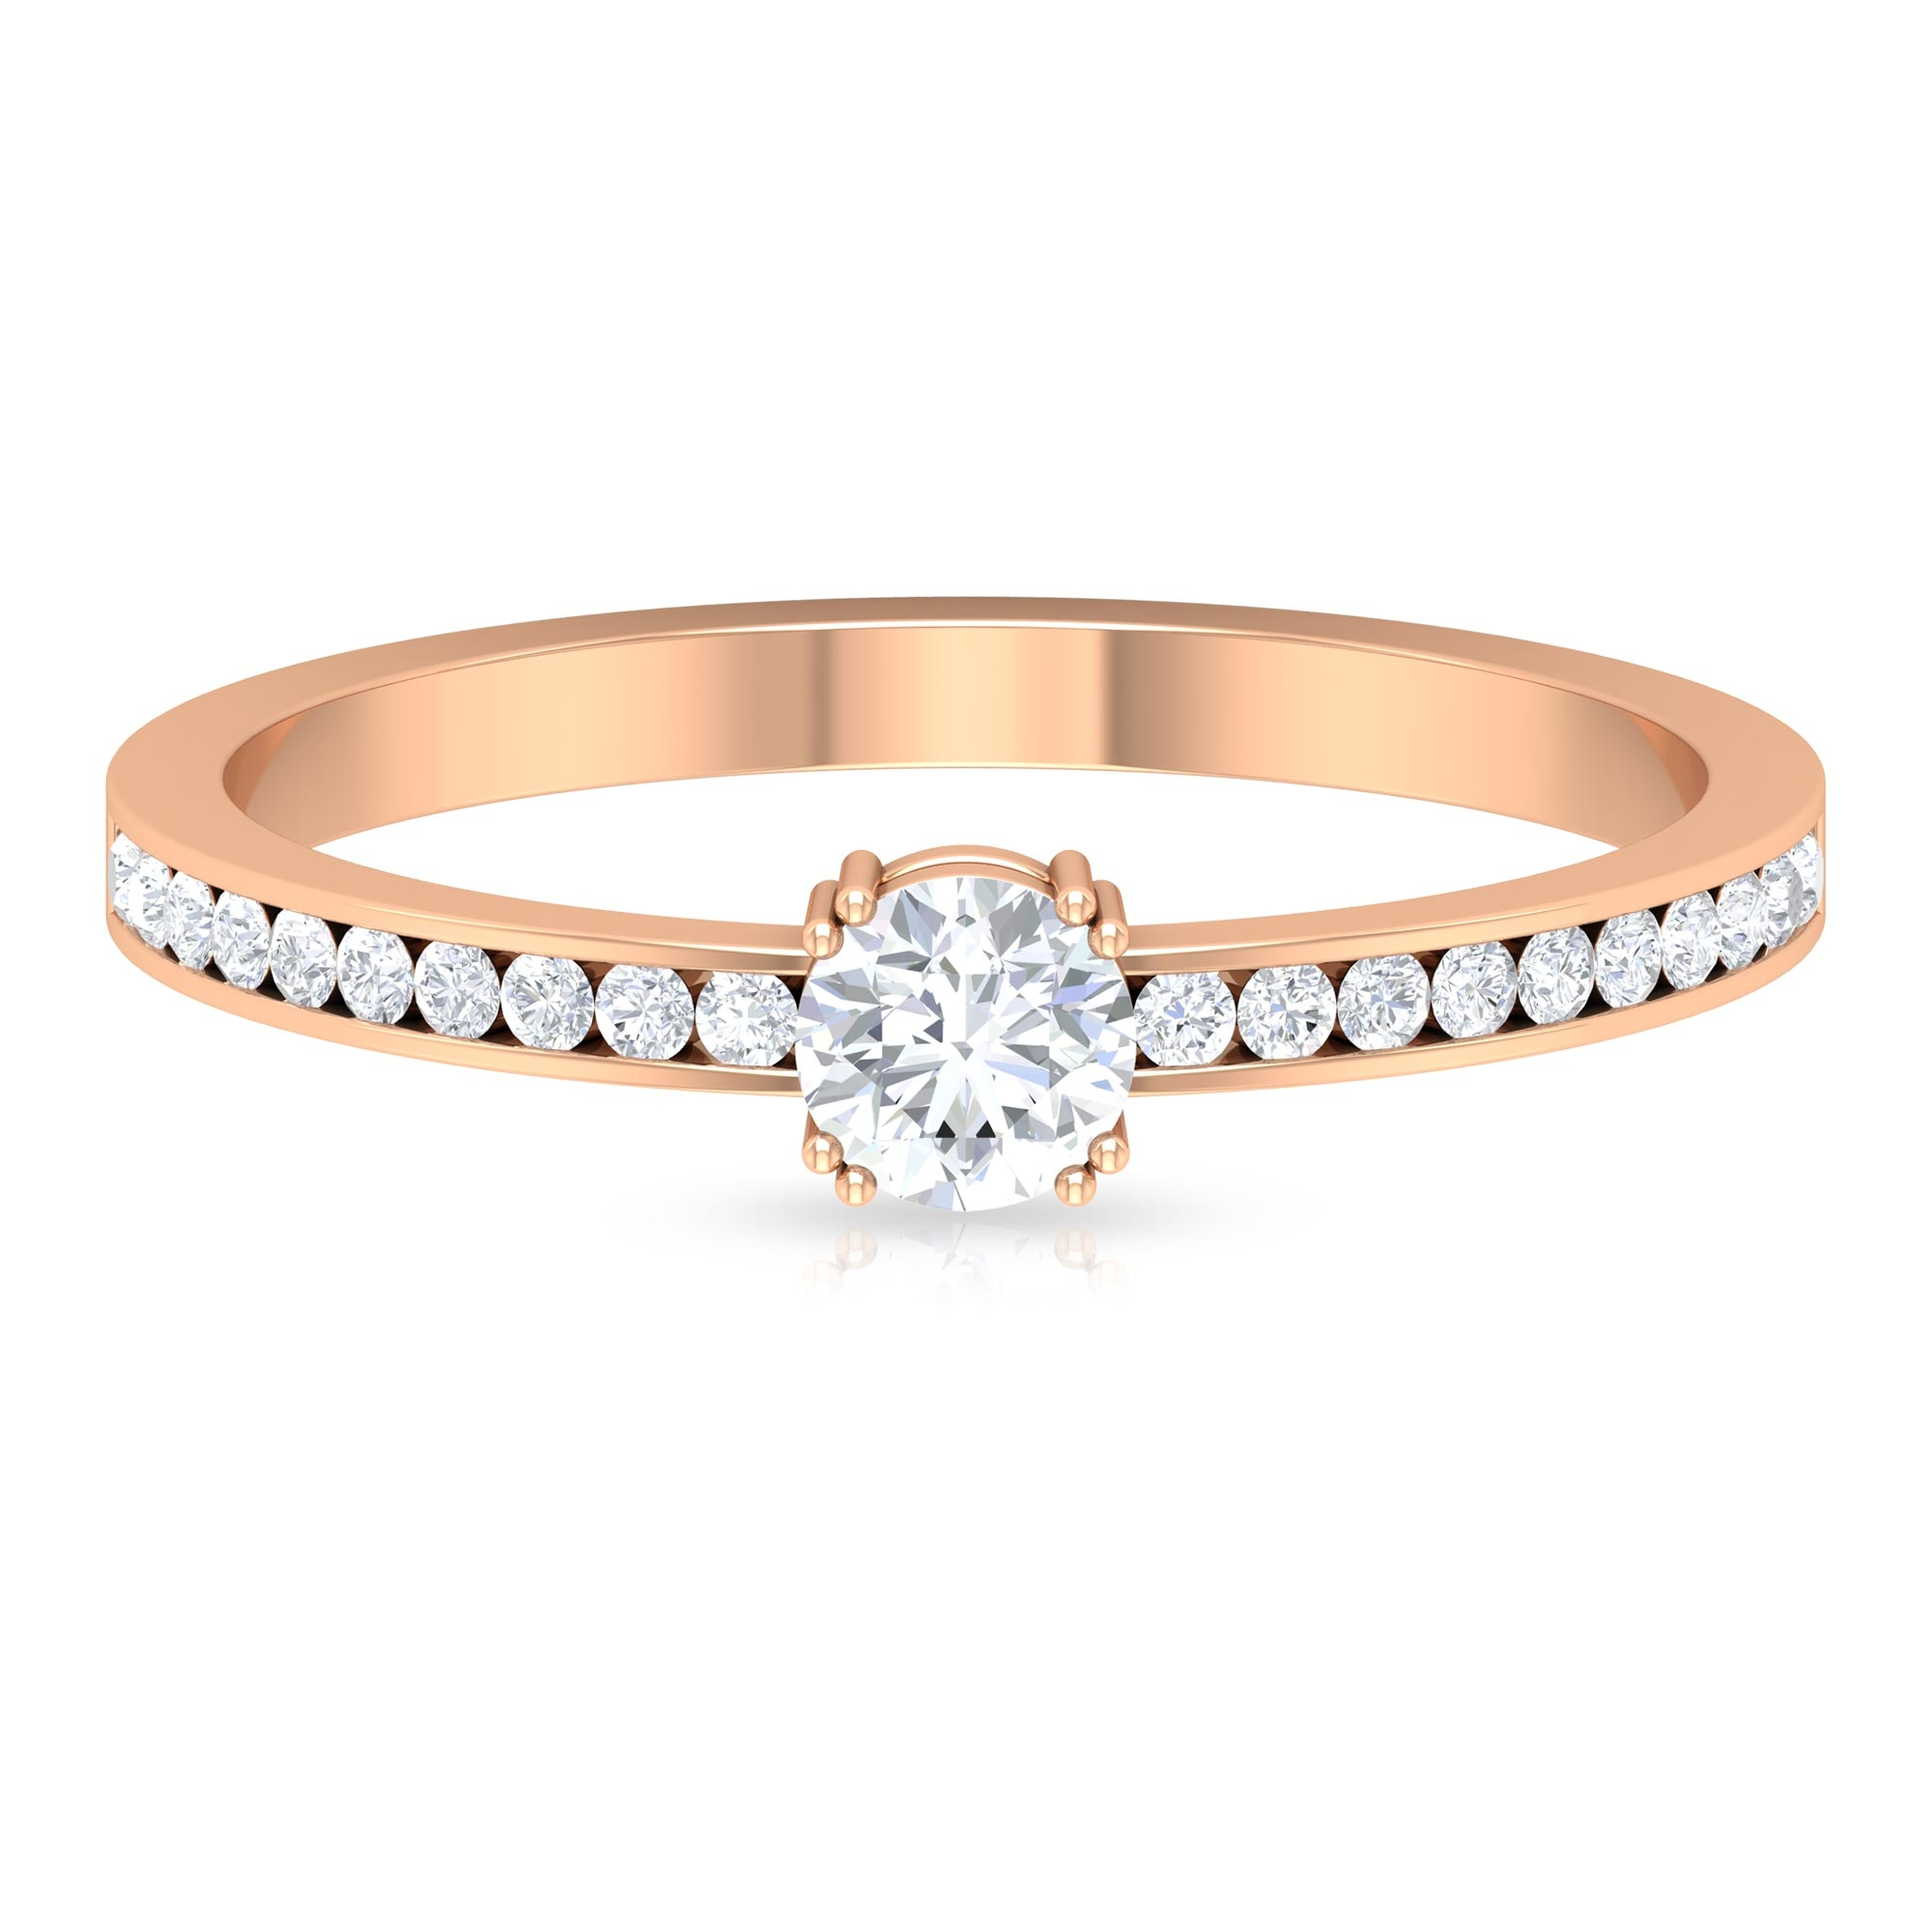 1/2 CT Double Prong Set Diamond Solitaire Ring with Channel Set Side Stones